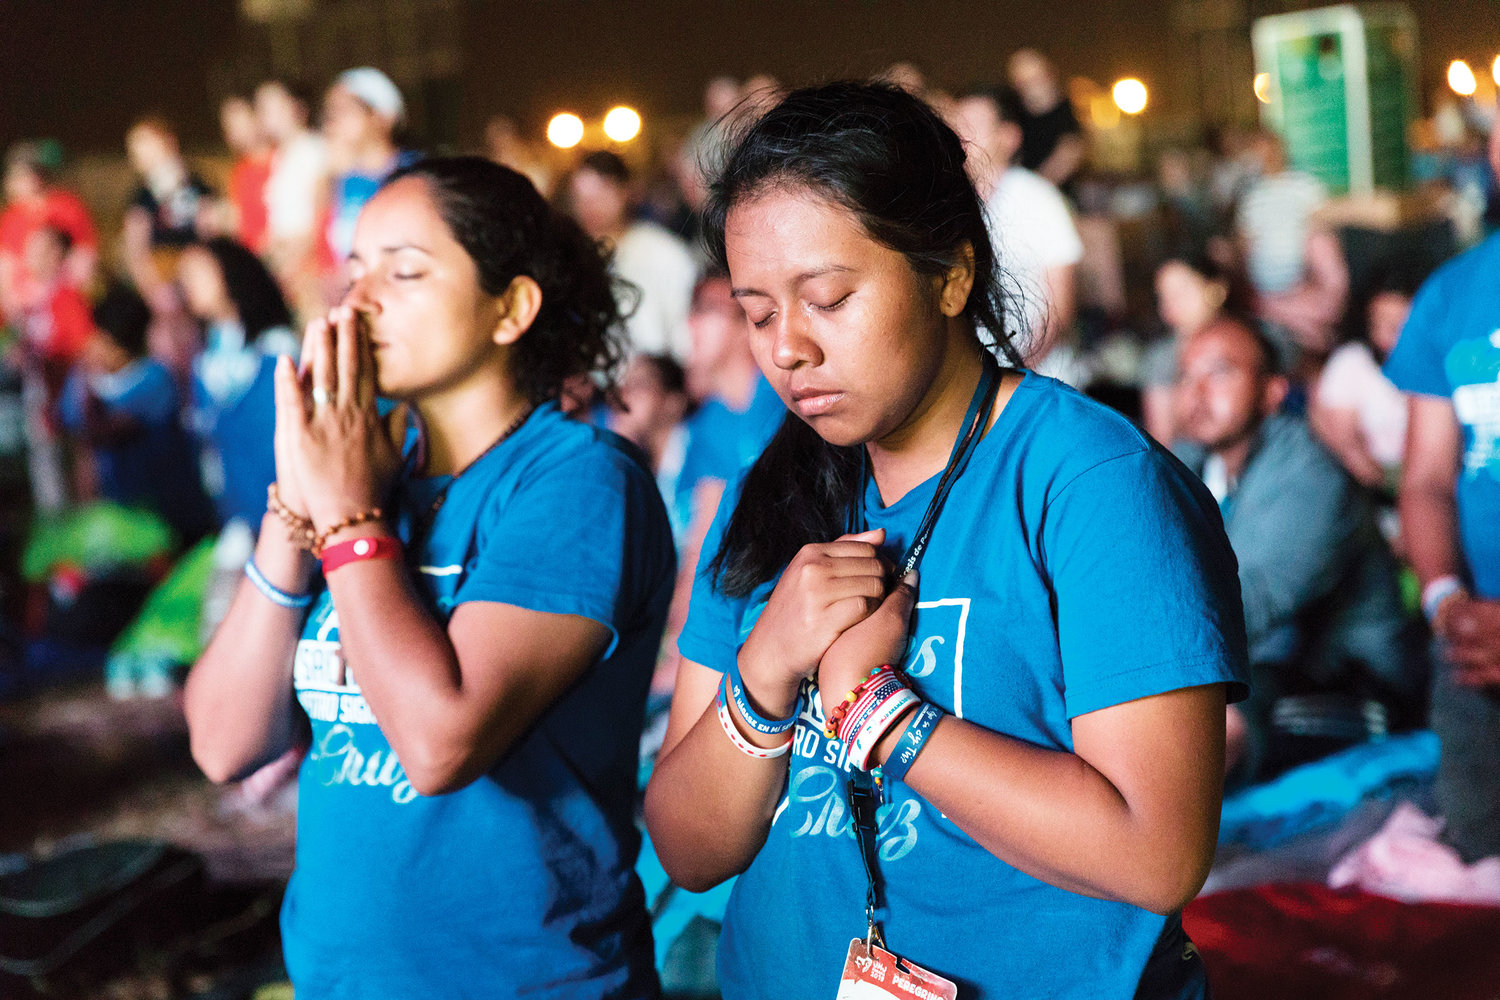 Many pilgrims were in deep prayer, inspired by contemplative choir music and the words of wisdom from the Holy Father.